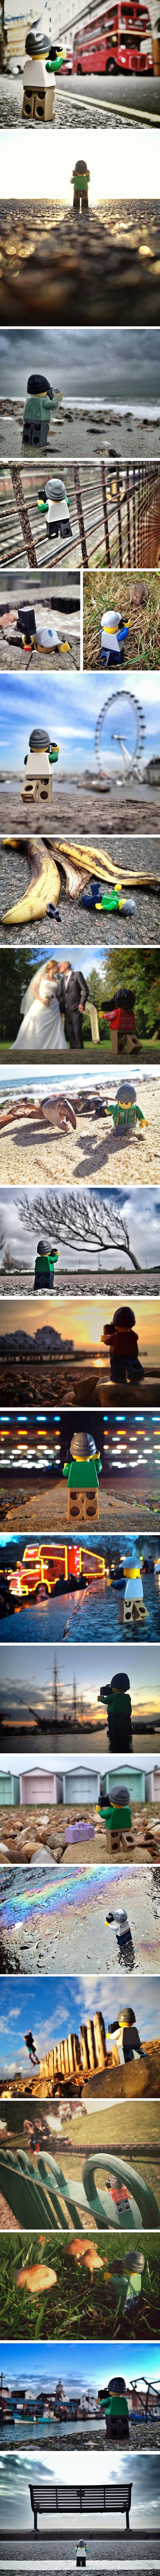 UK-based photographer Andrew Whyte specializes in long-exposure photography, but lately he's been busy with a small-scale project: the adventures of a Lego figure dubbed Leg O'Grapher